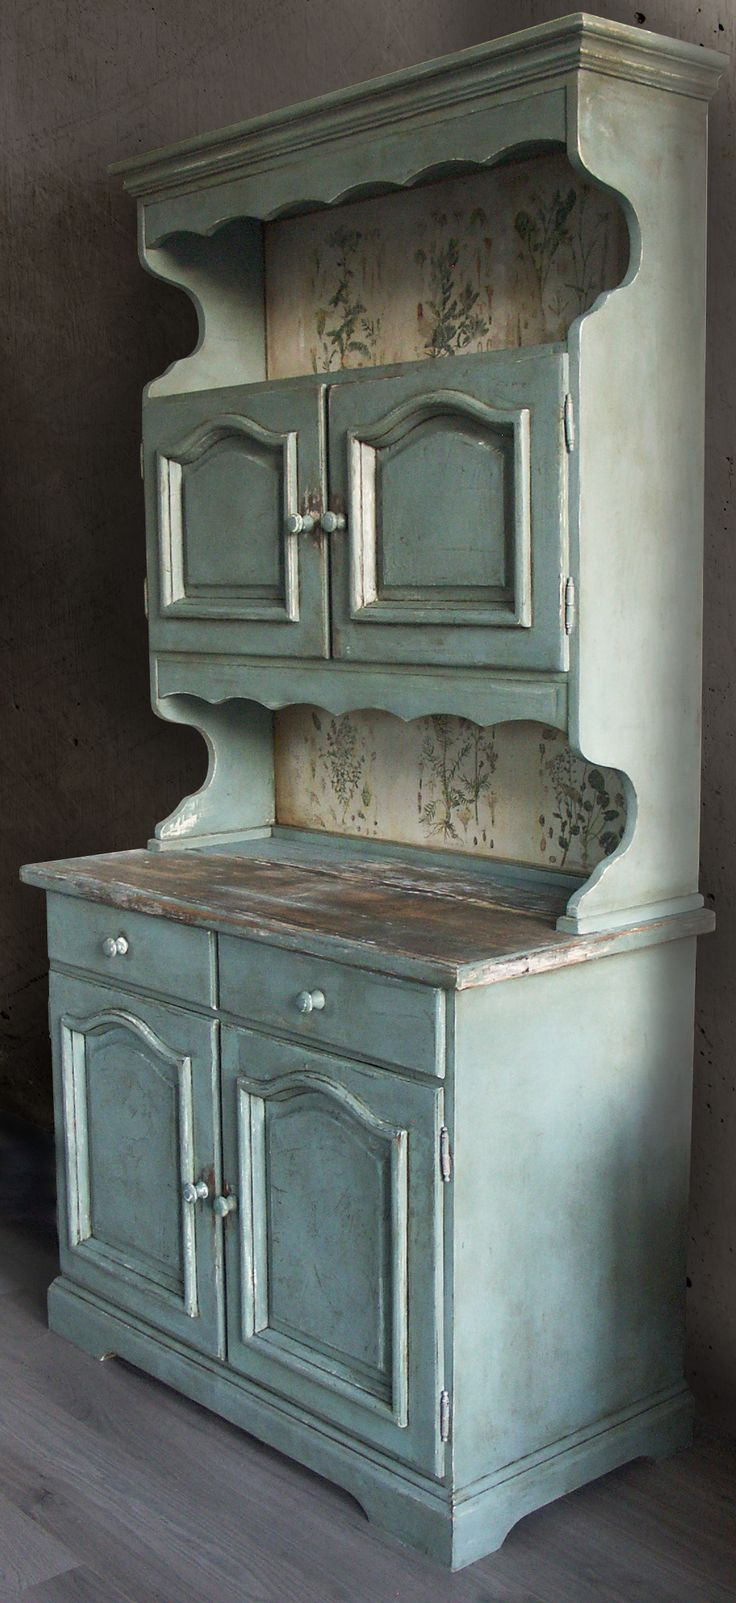 Its milk guys i promise ally lyons - Find This Pin And More On Painted Furnitures Chippy Milk Paint Chalk Paint